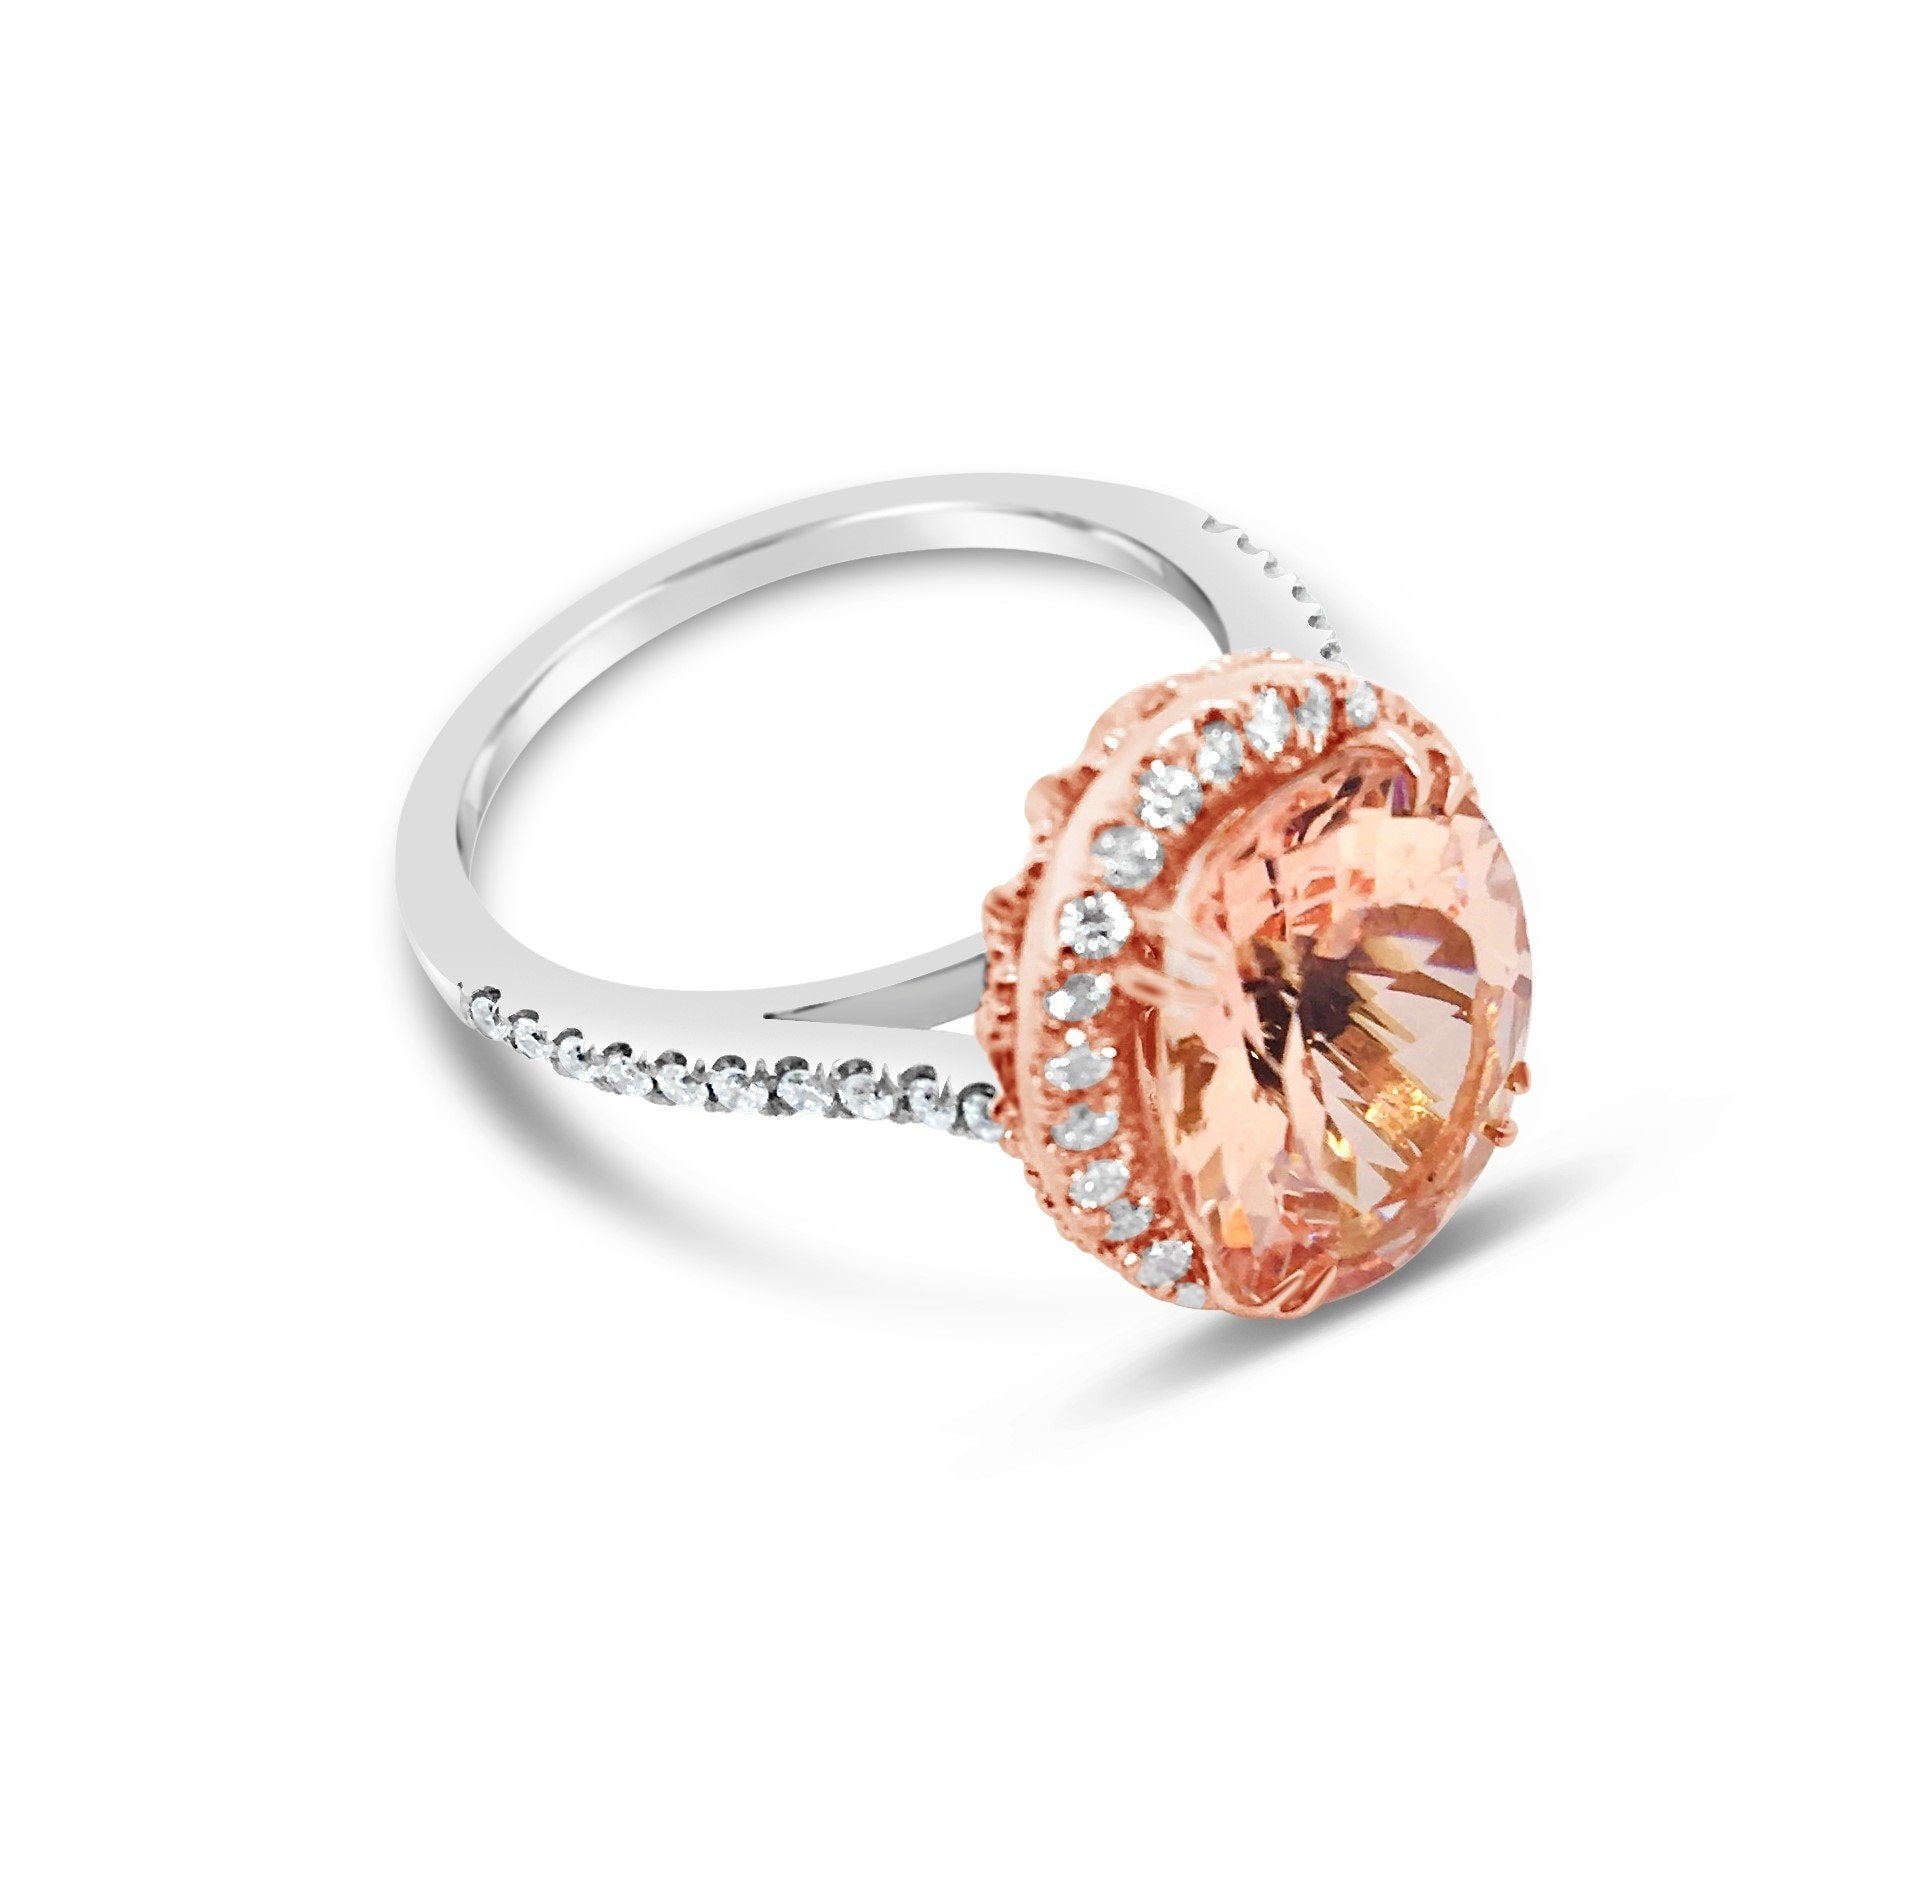 Smales Bespoke Morganite & Diamond Ring